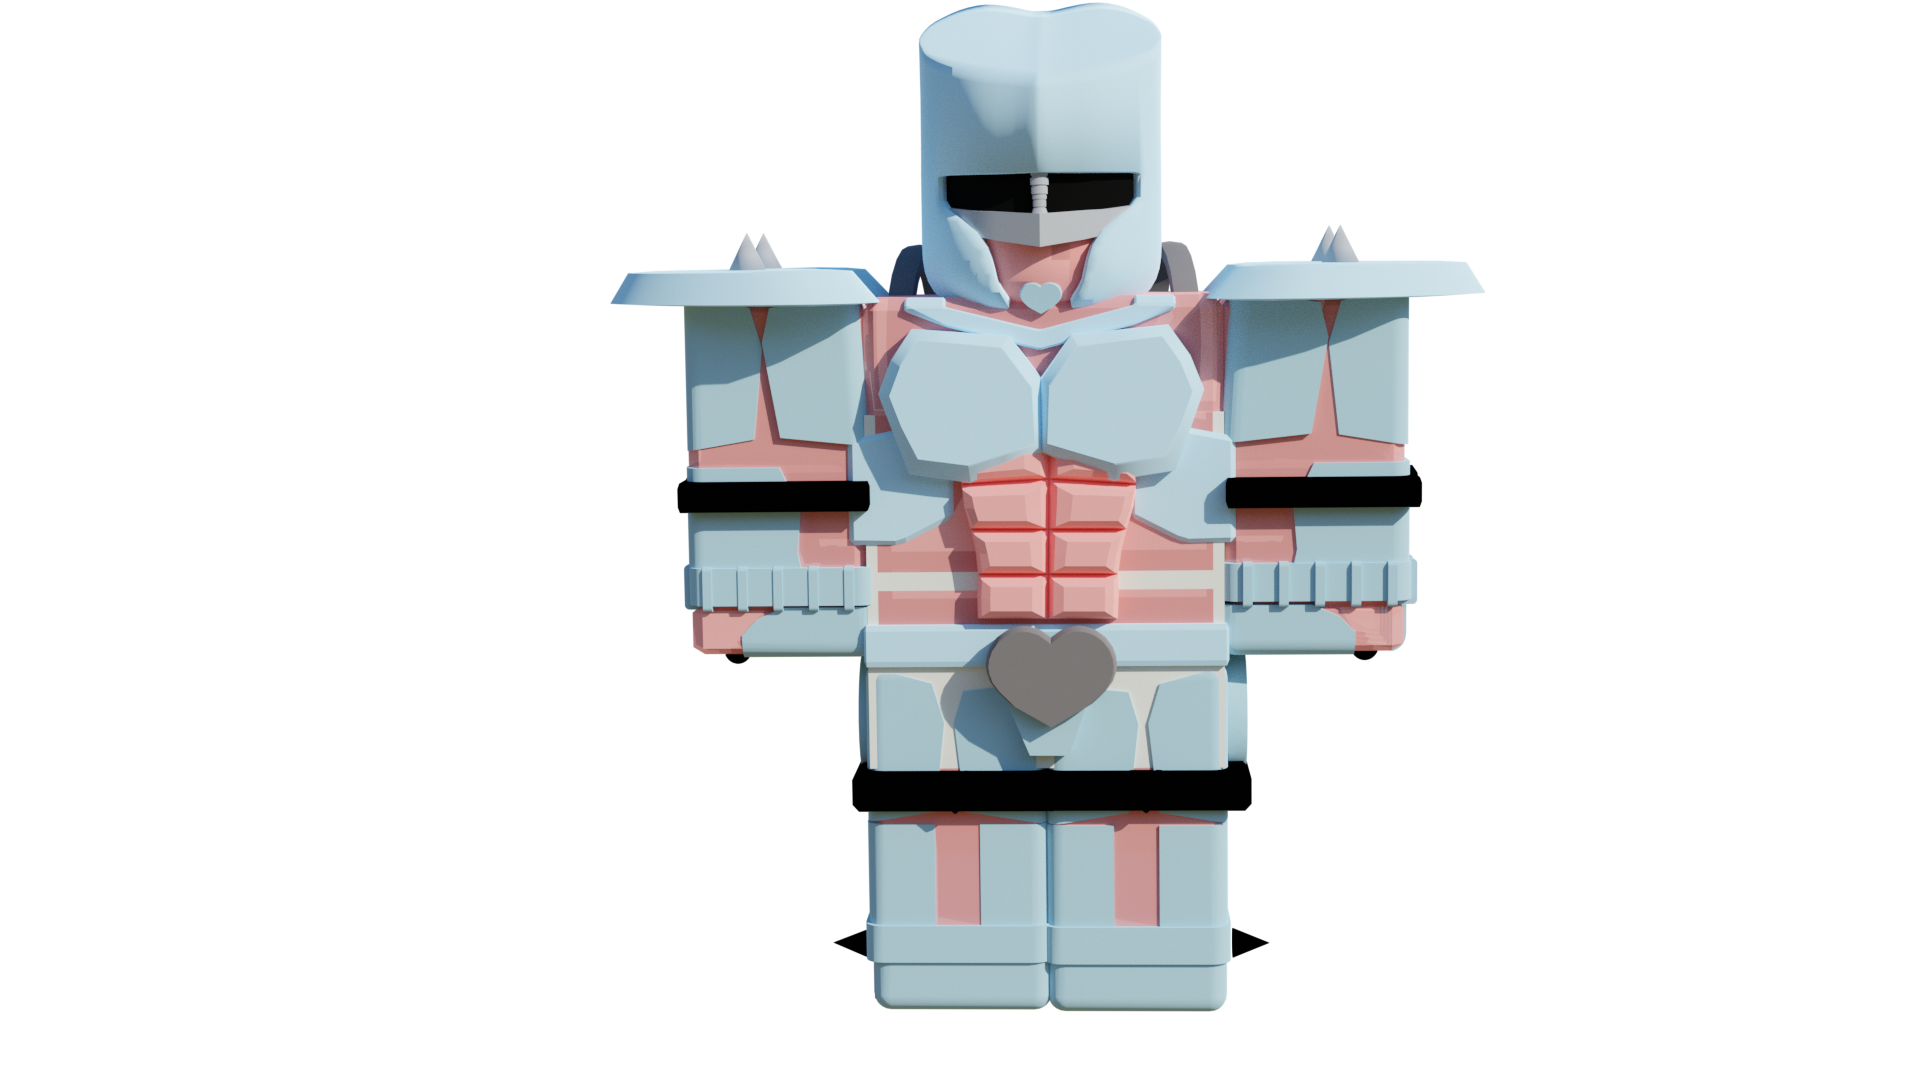 Crazy Diamond Jojo Blox Wiki Fandom Out of the endless possible name combinations, i present you w/ my favorite! crazy diamond jojo blox wiki fandom